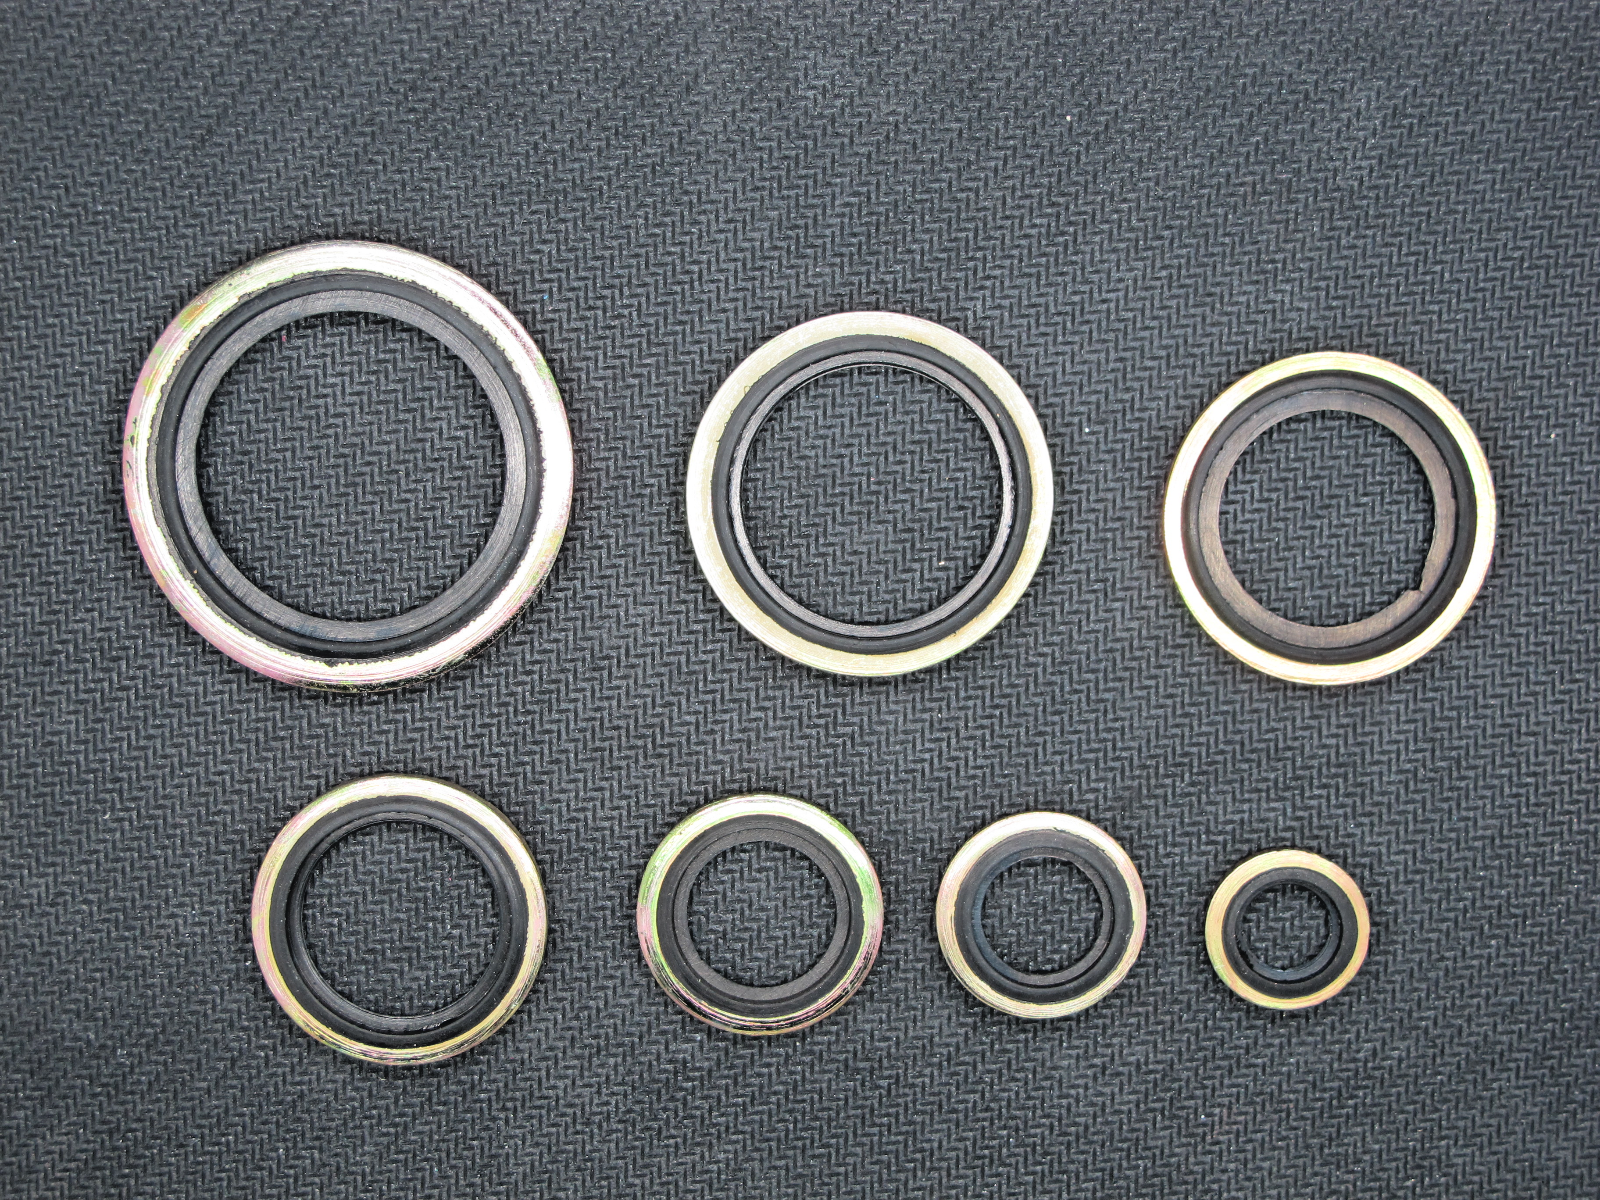 Qty 90 10mm - 24mm Assorted Box of Bonded Seals Metric Dowty Washers